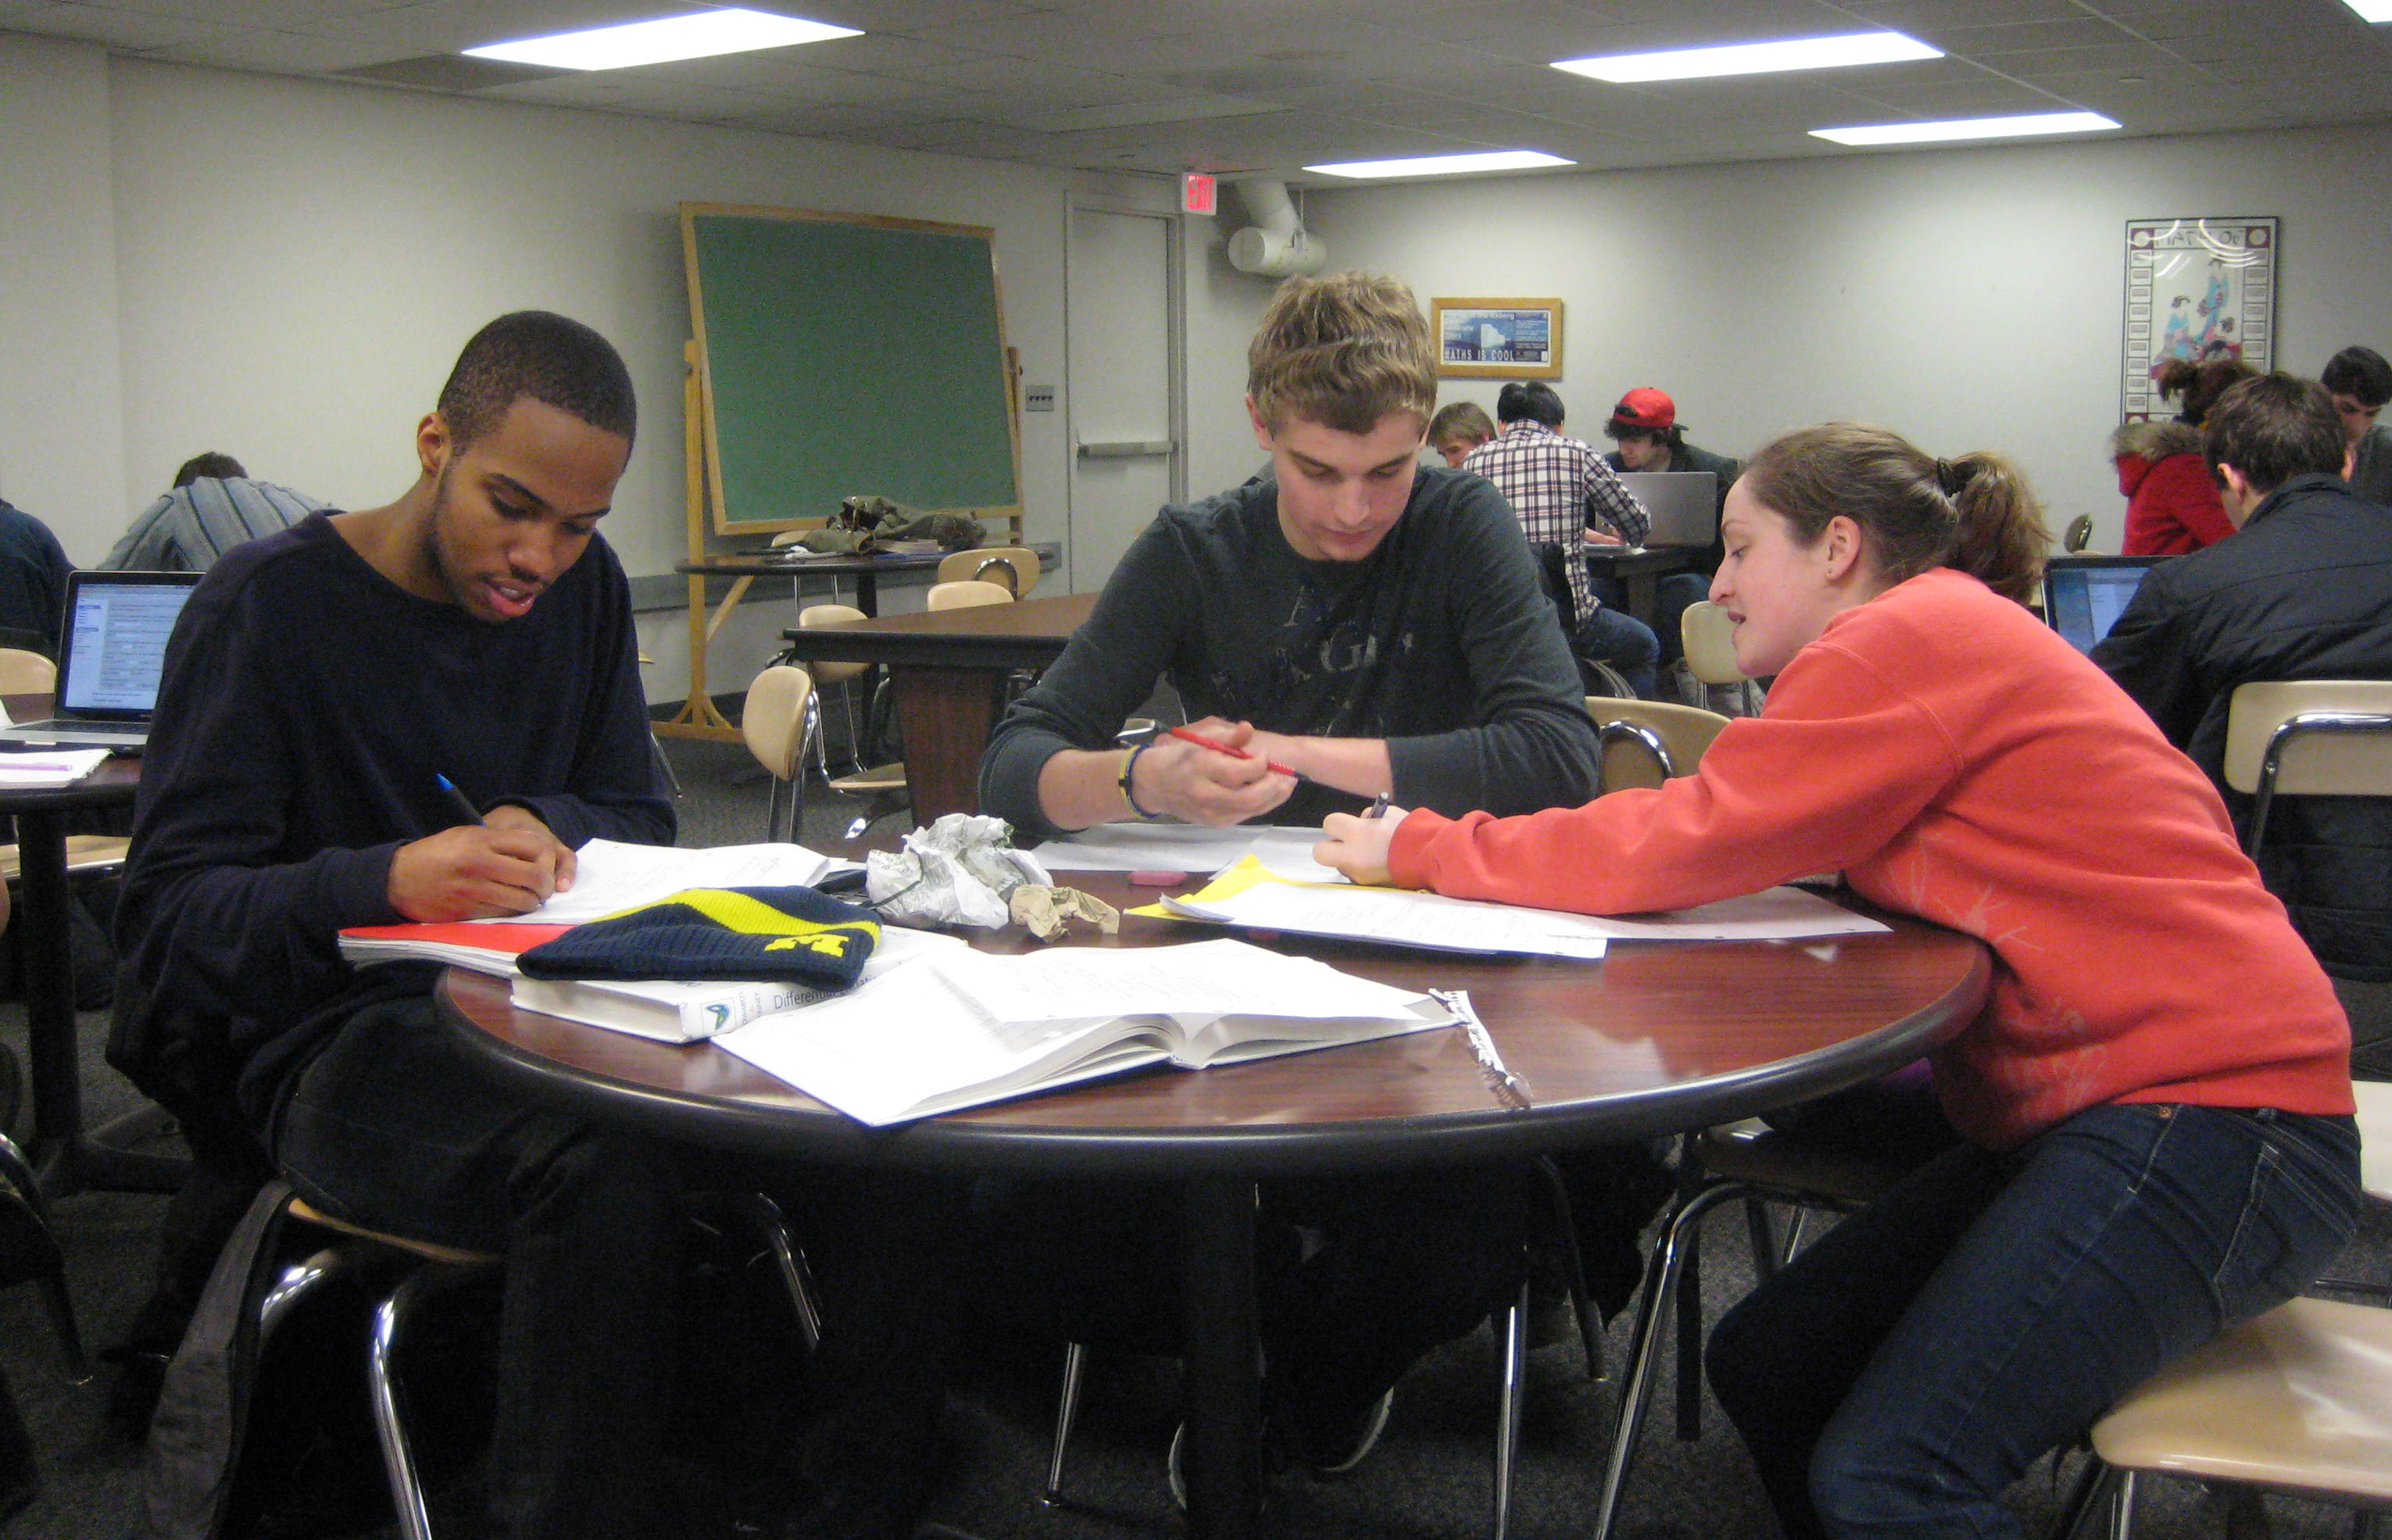 [students working in the math tutoring center]